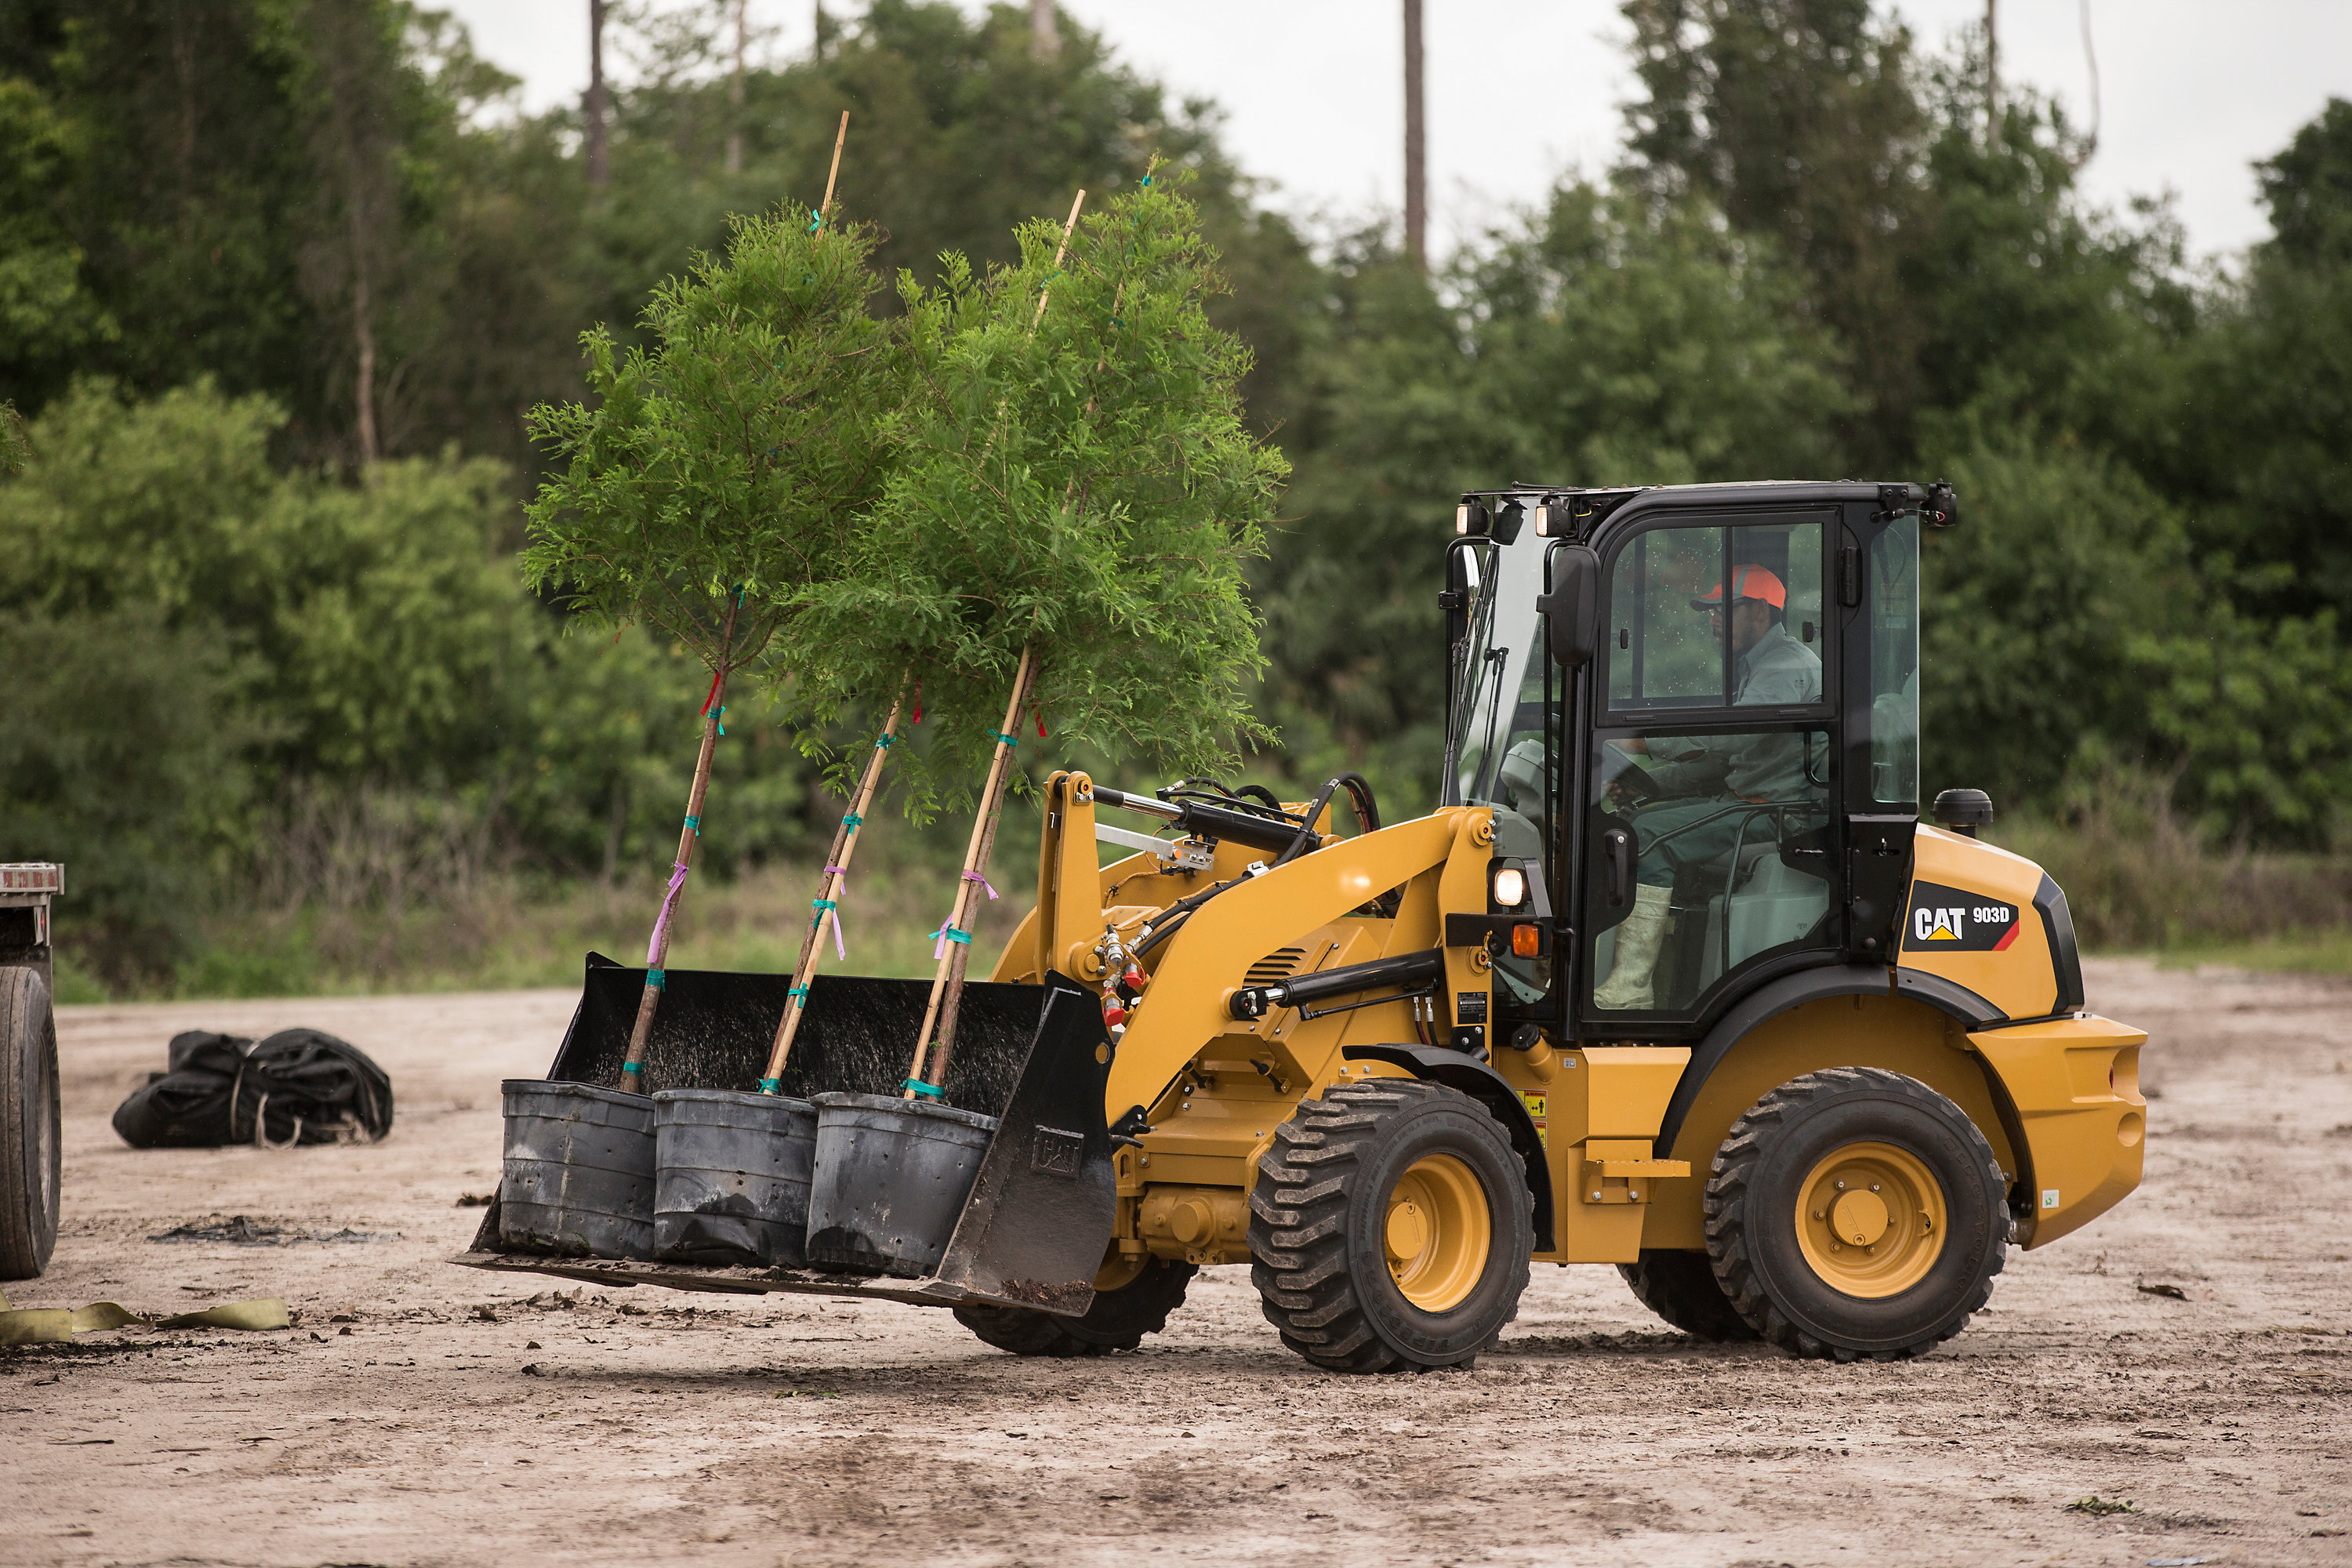 Caterpillar Introduces Revamped 903 Compact Wheel Loader